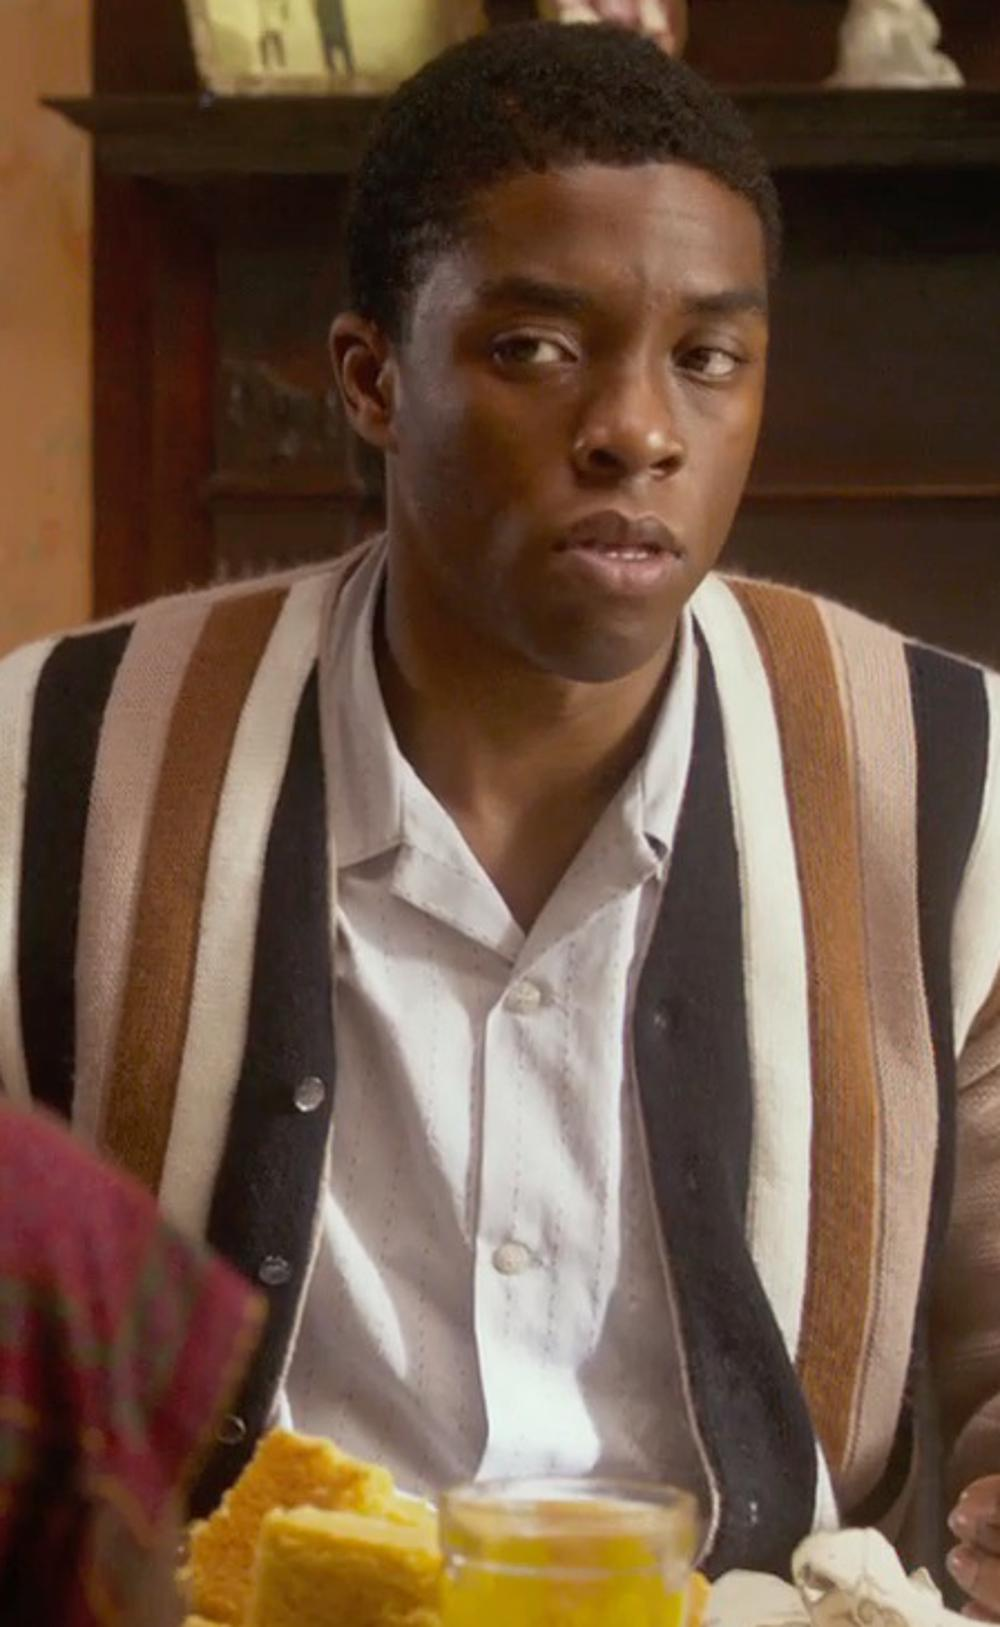 Chadwick Boseman with Neiman Marcus Trim-Fit Non-Iron White-On-White Dress Shirt in Get On Up